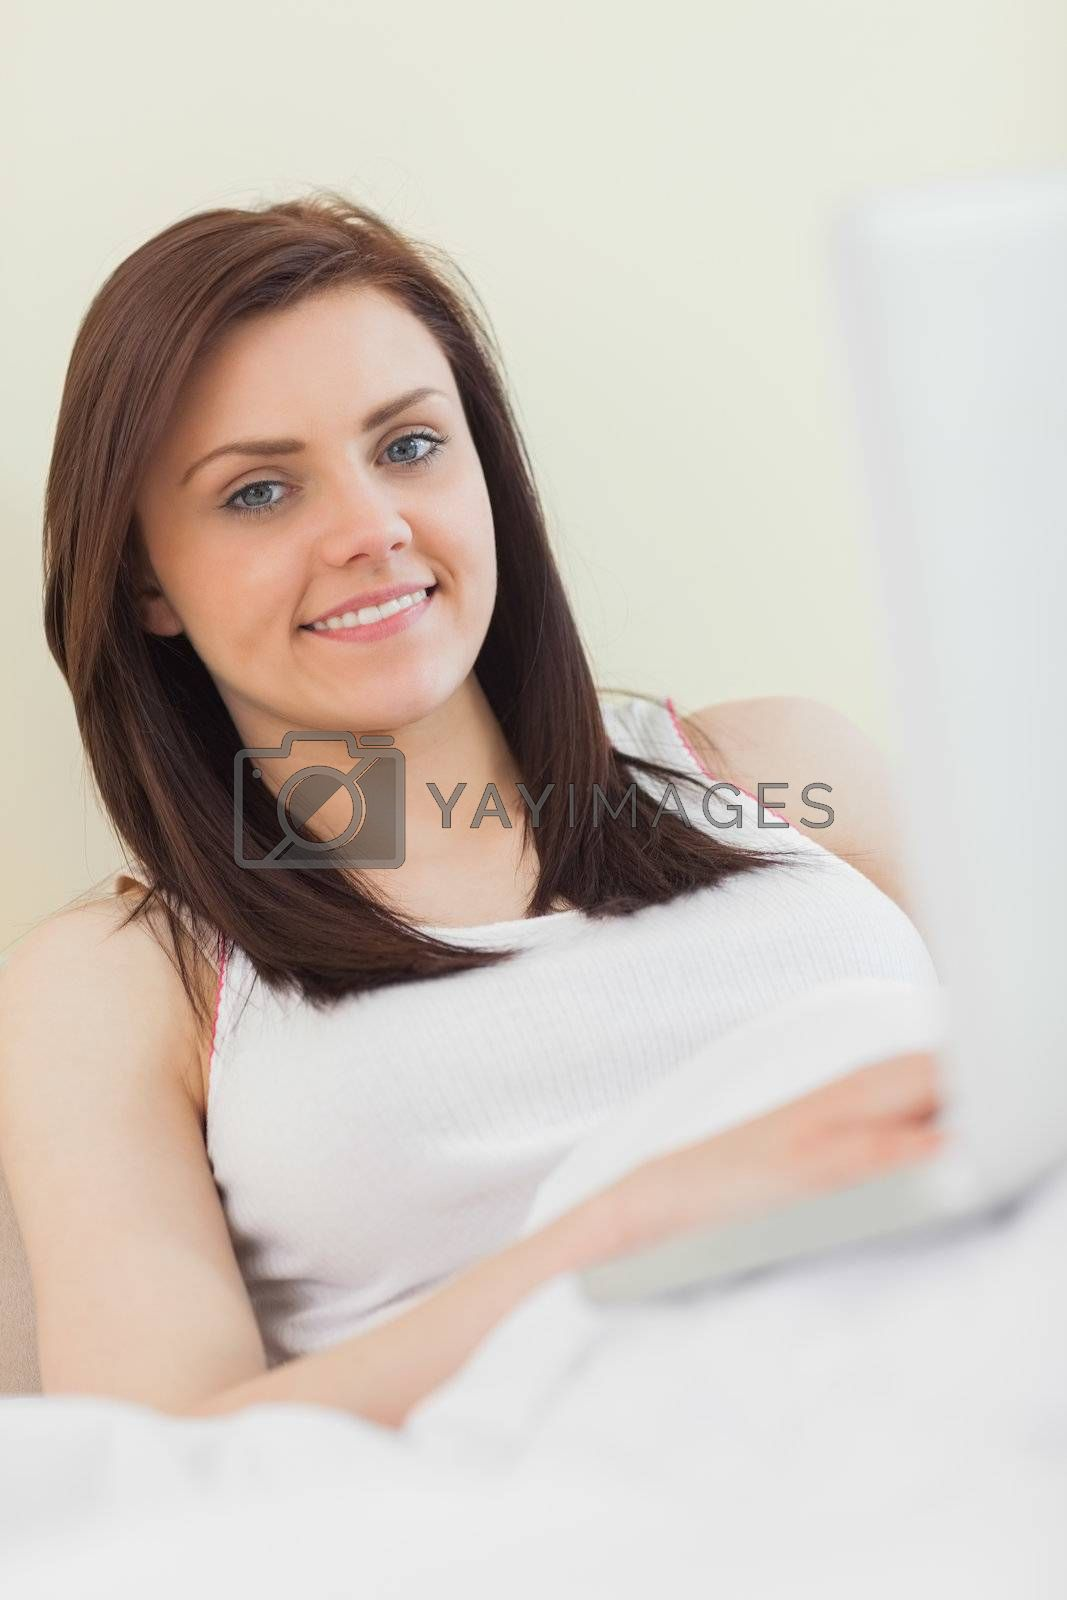 Content girl looking at camera and using a laptop lying on a bed by Wavebreakmedia